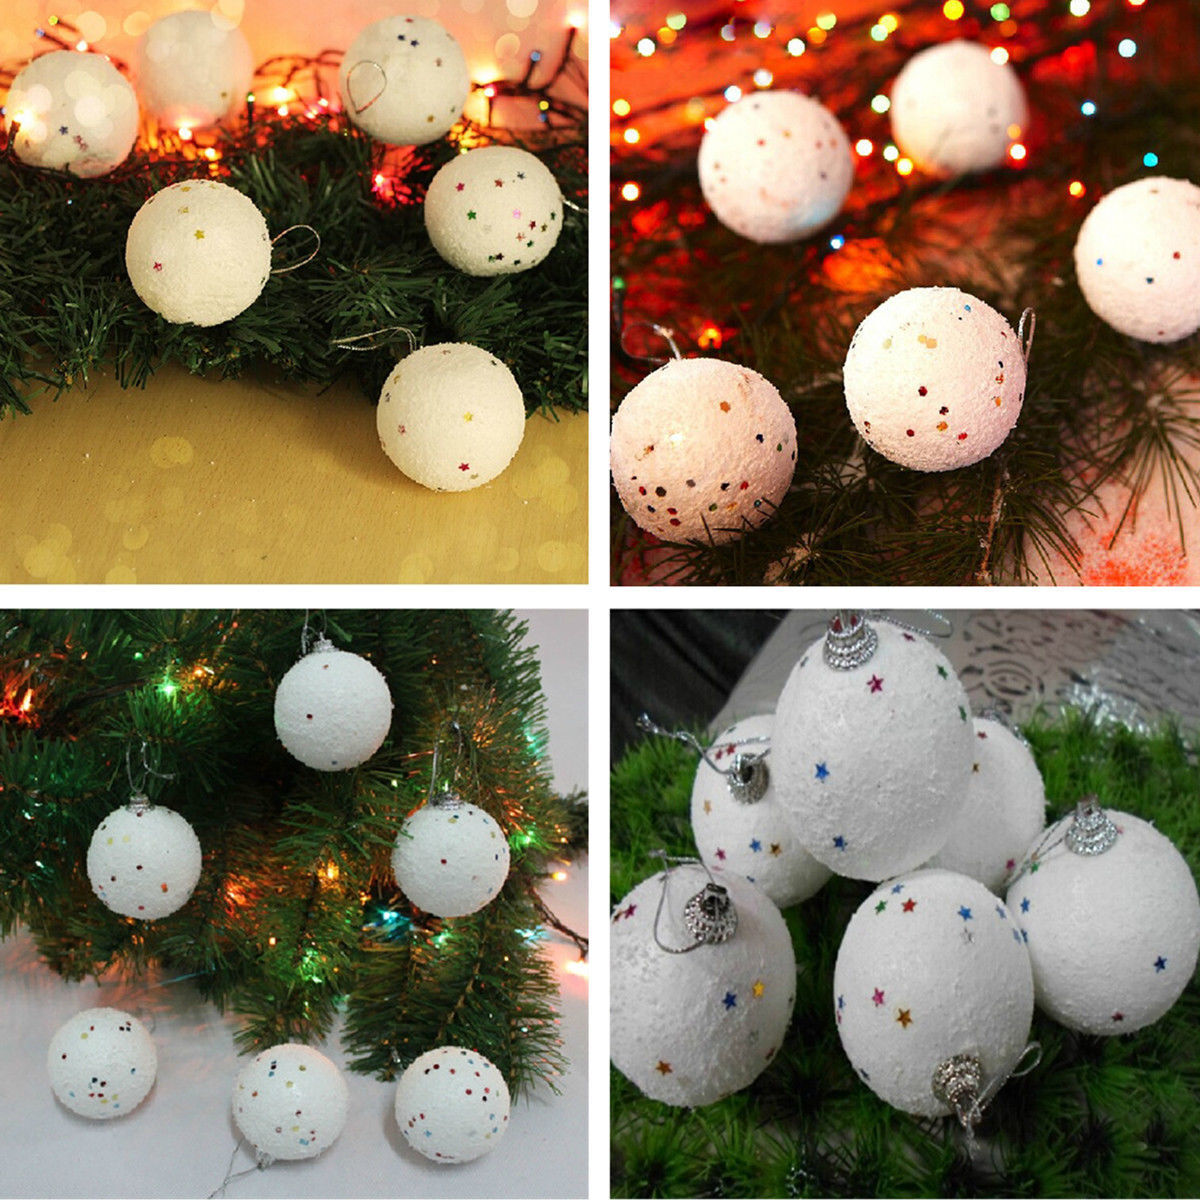 Hot 12x Fake snowballs for Christmas decorations or throwings and display HPTH